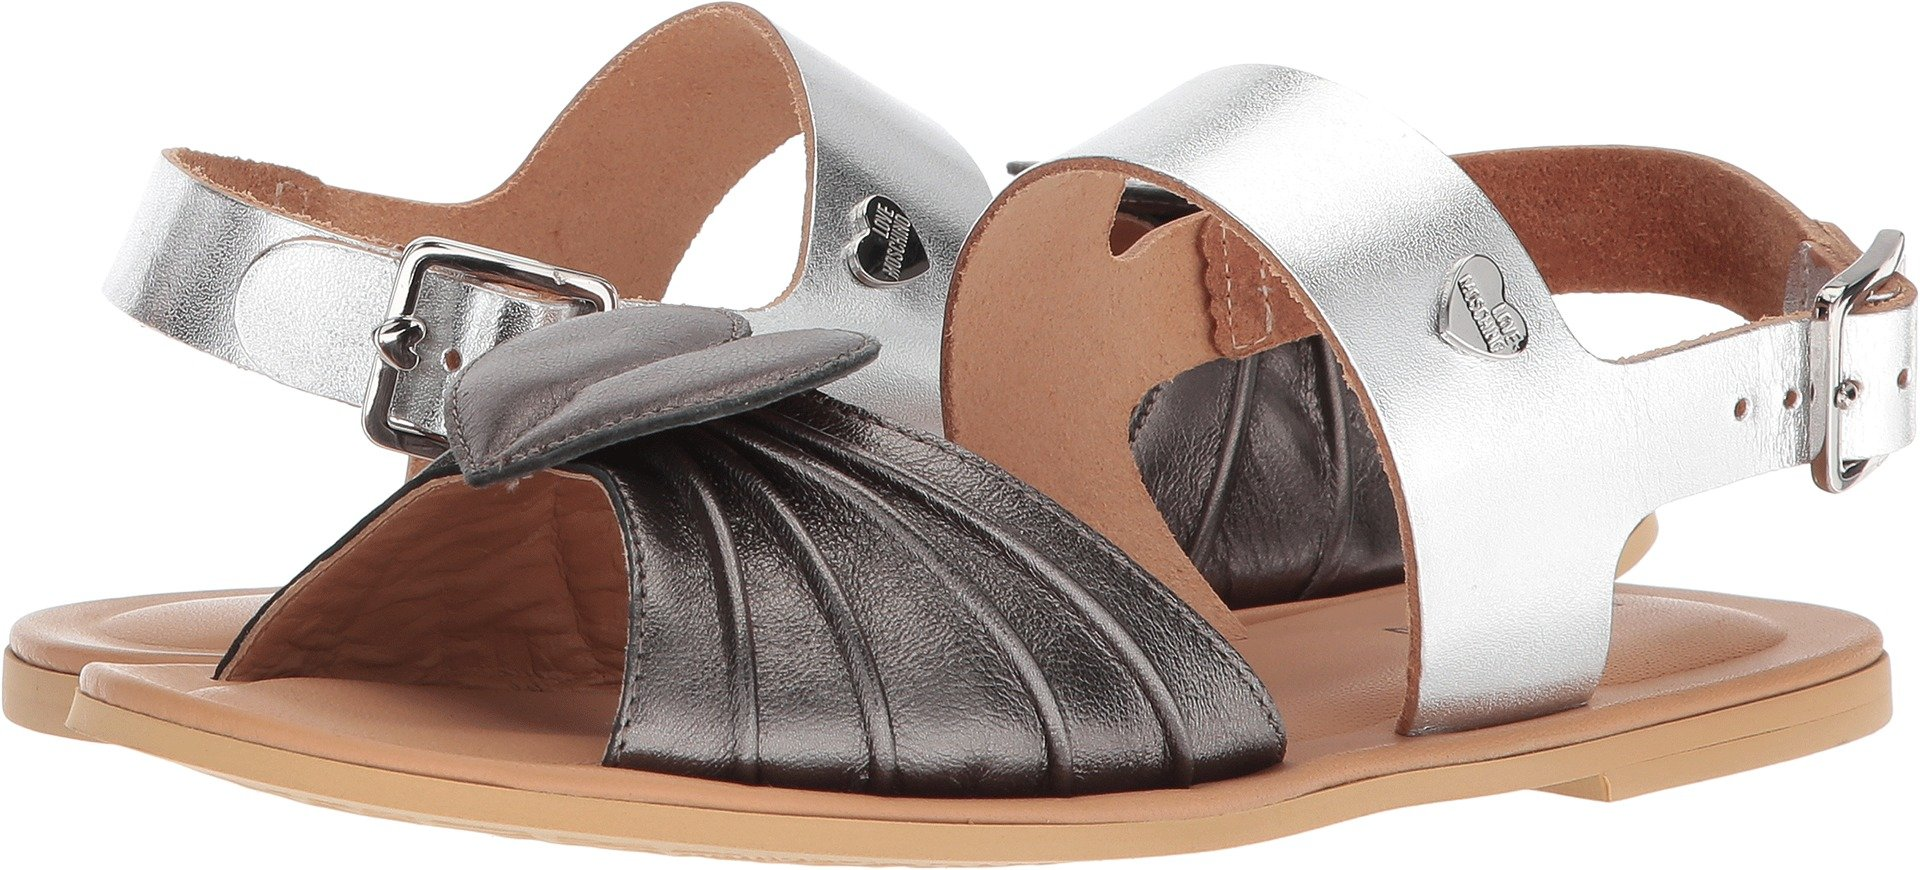 Love Moschino Women's Leather Sandals w/Tone On Tone accessories Black/Silver 40 M EU by Love Moschino (Image #1)